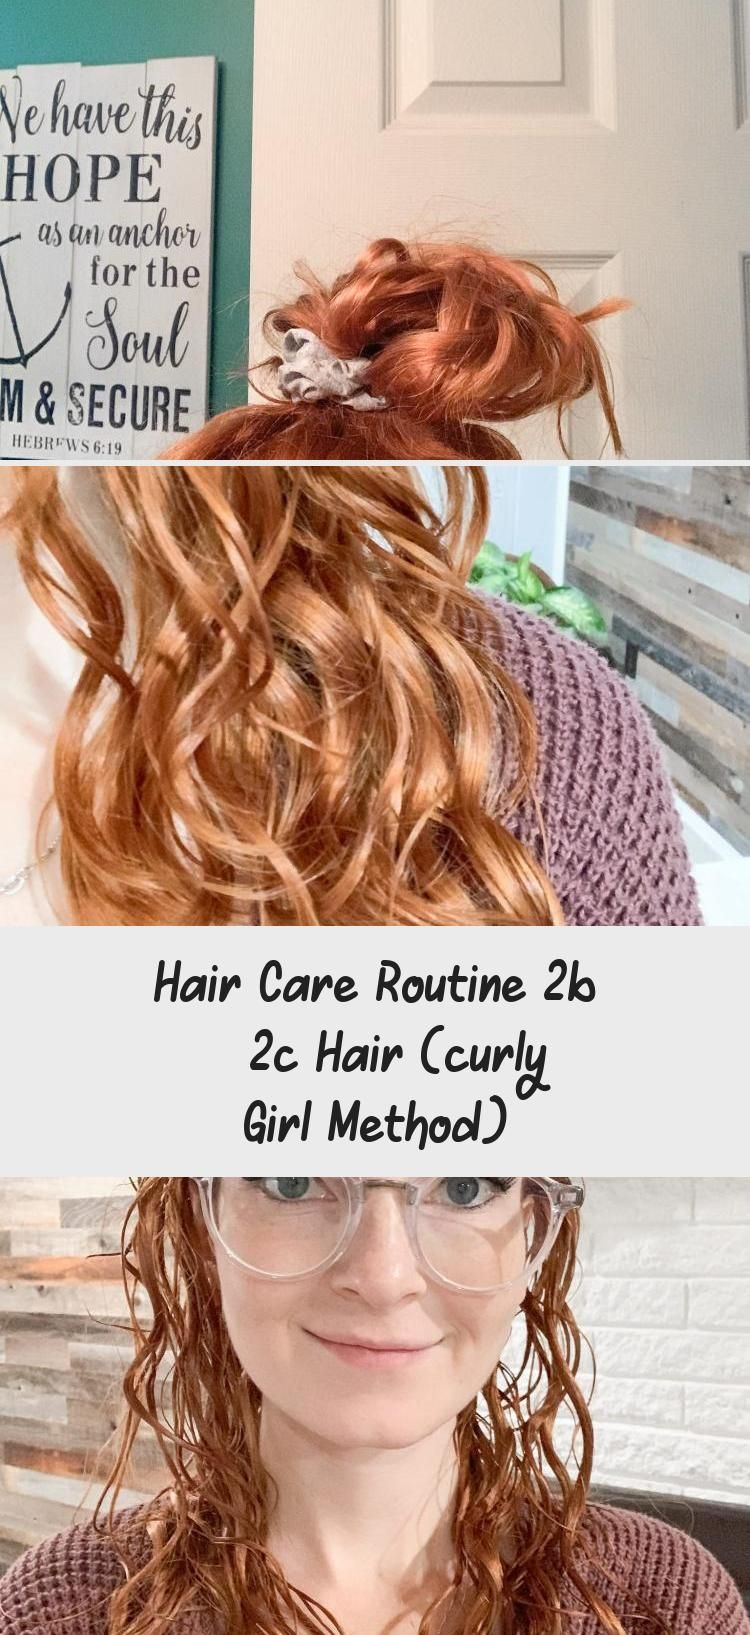 Hair Care Routine 2b 2c Hair (curly Girl Method in 2020